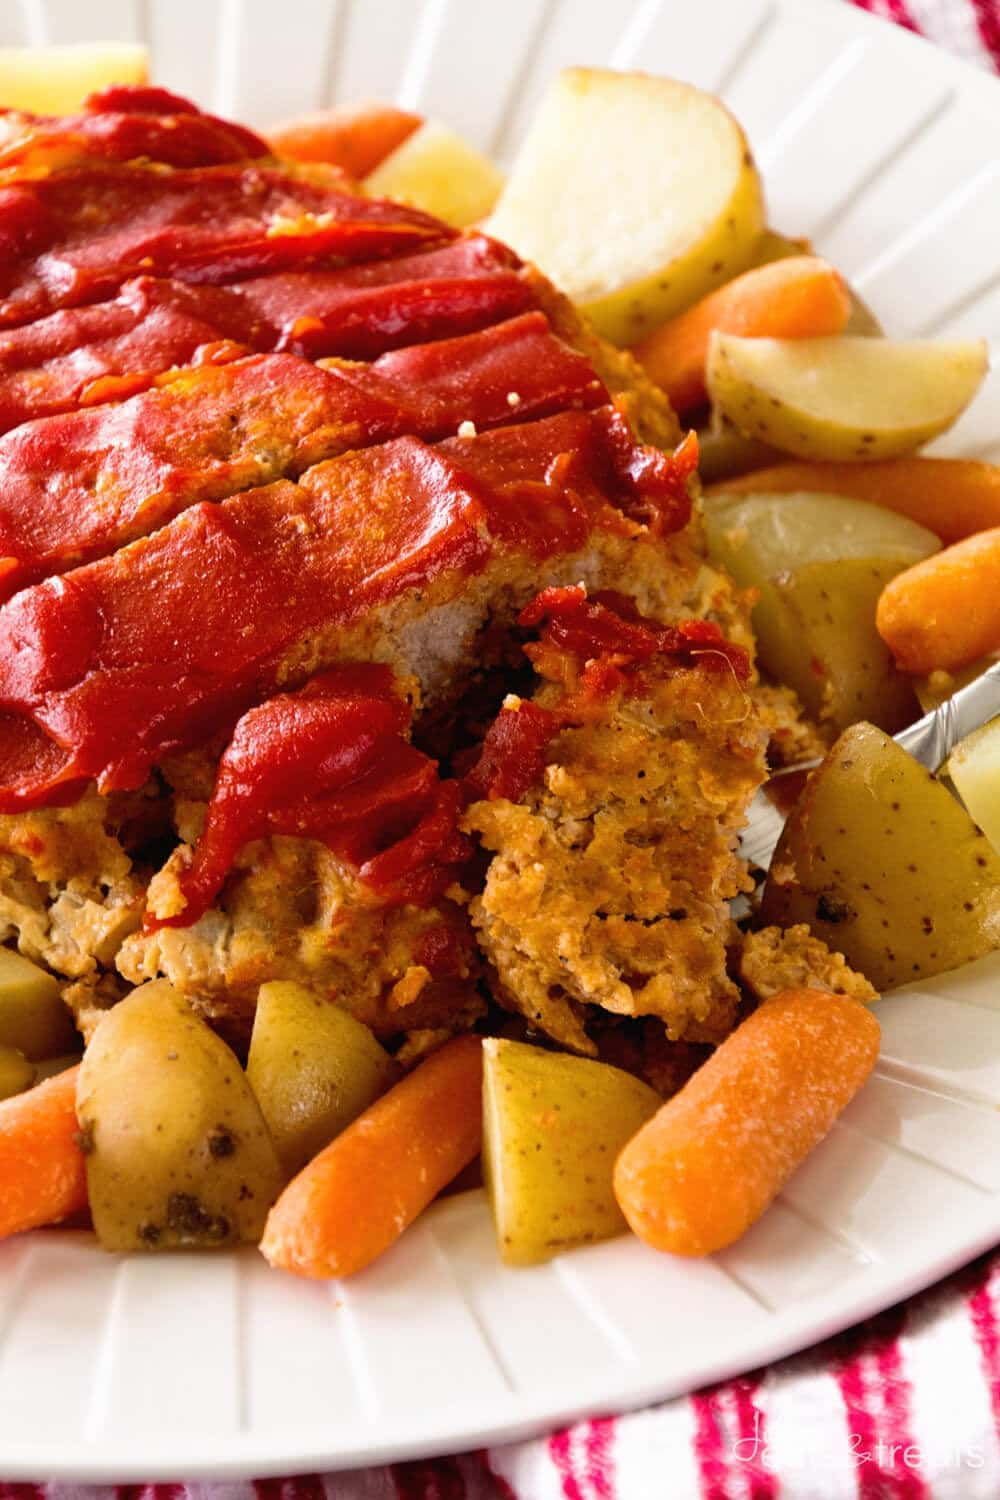 Crock Pot Meatloaf & Veggies ~ Comforting, Meatloaf Topped with Ketchup and Made in the Slow Cooker with Potatoes and Carrots! Make Your Entire Meal in the Crock Pot Tonight!